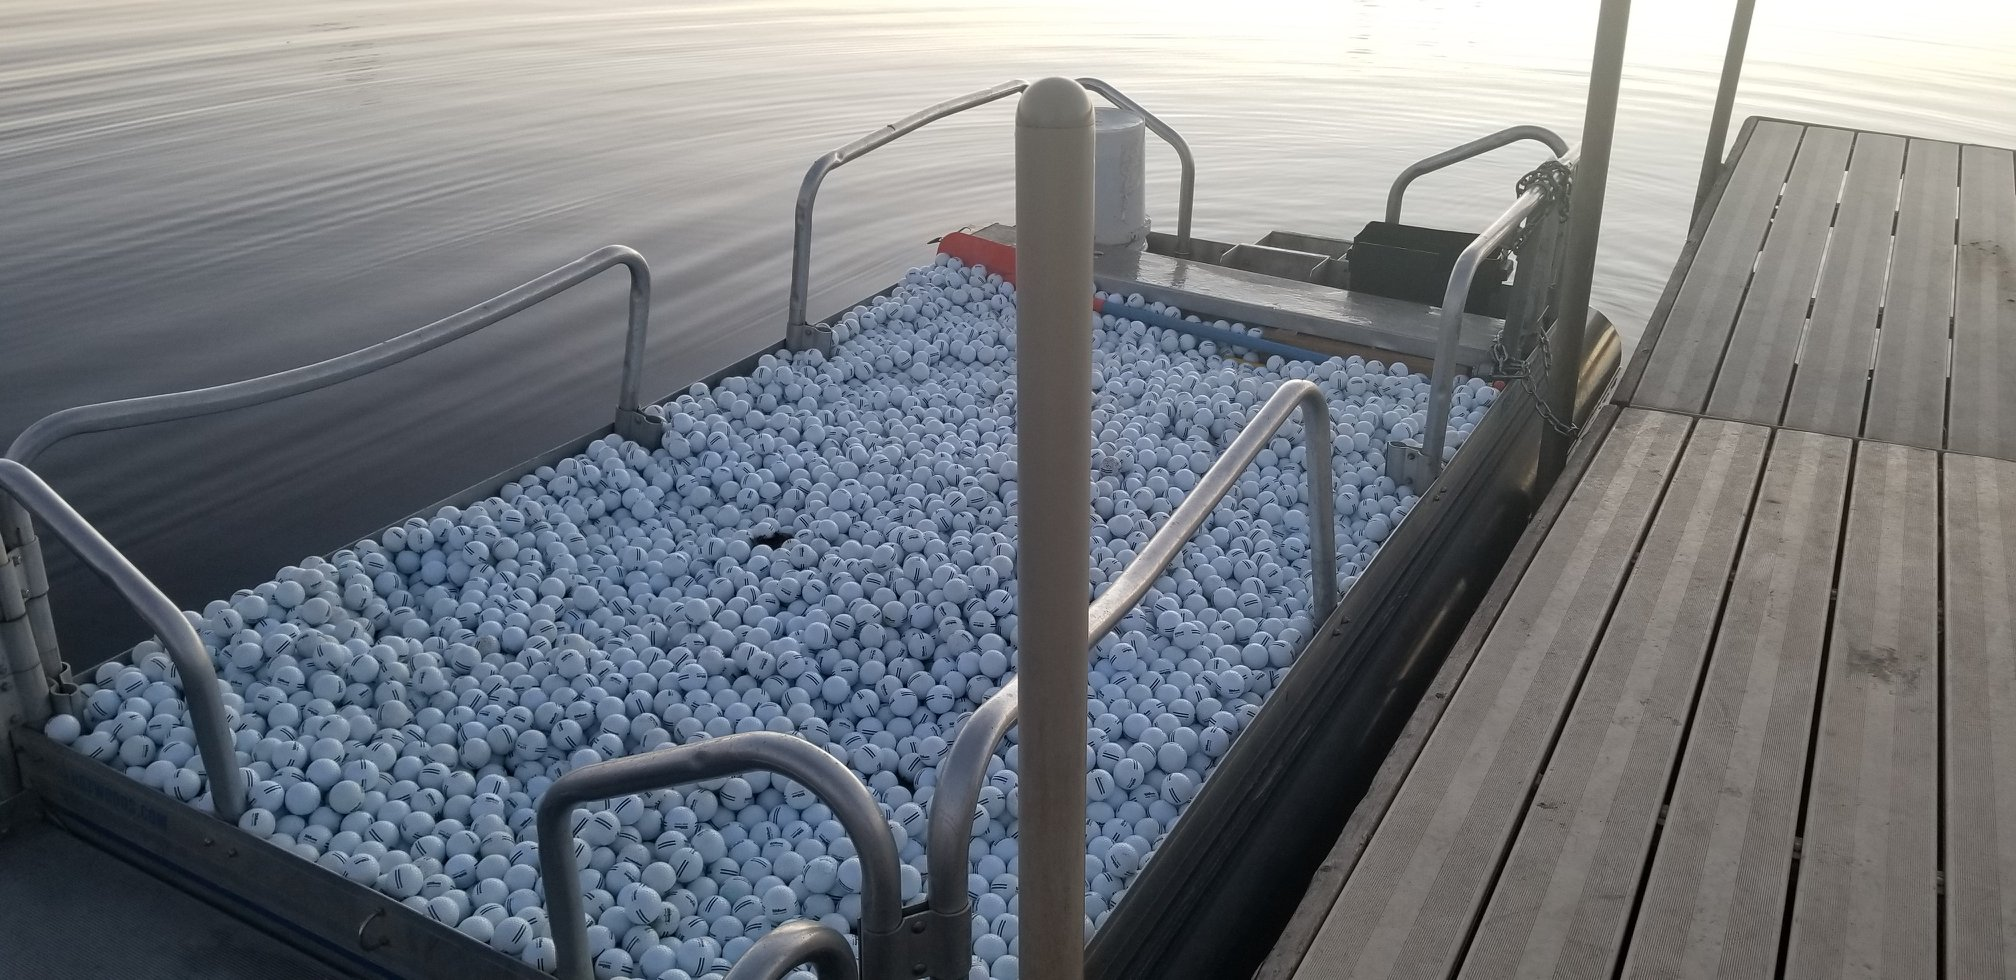 Another photo from the Aqua Golf Company and one of our Fish N Sport model pontoon boats that has been used as a service unit to collect balls from golf course lakes in Colorado.